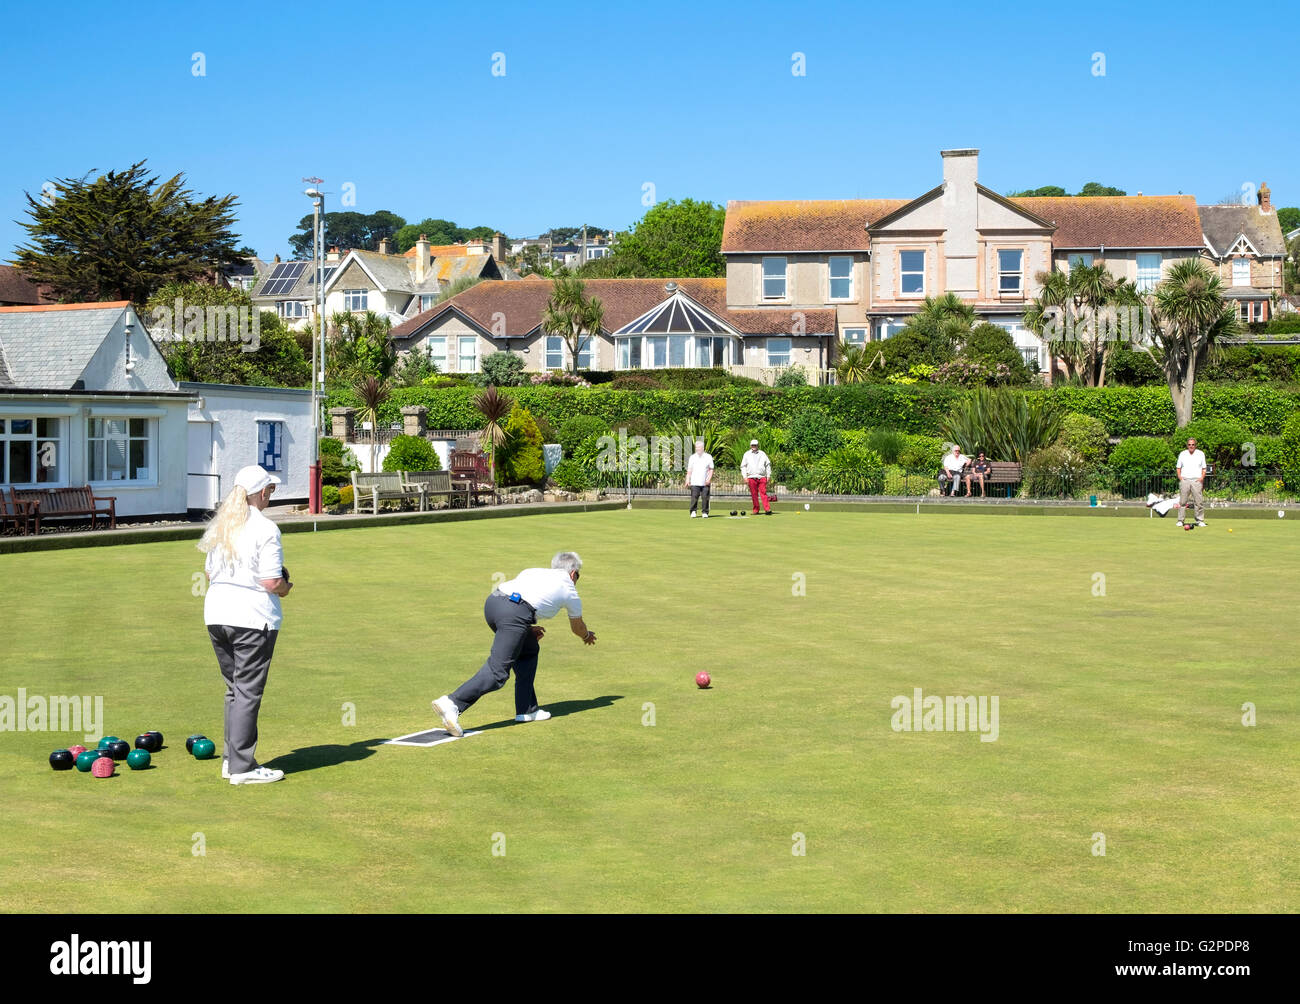 Flat Green bowling at Penzance in Cornwall, England, UK - Stock Image